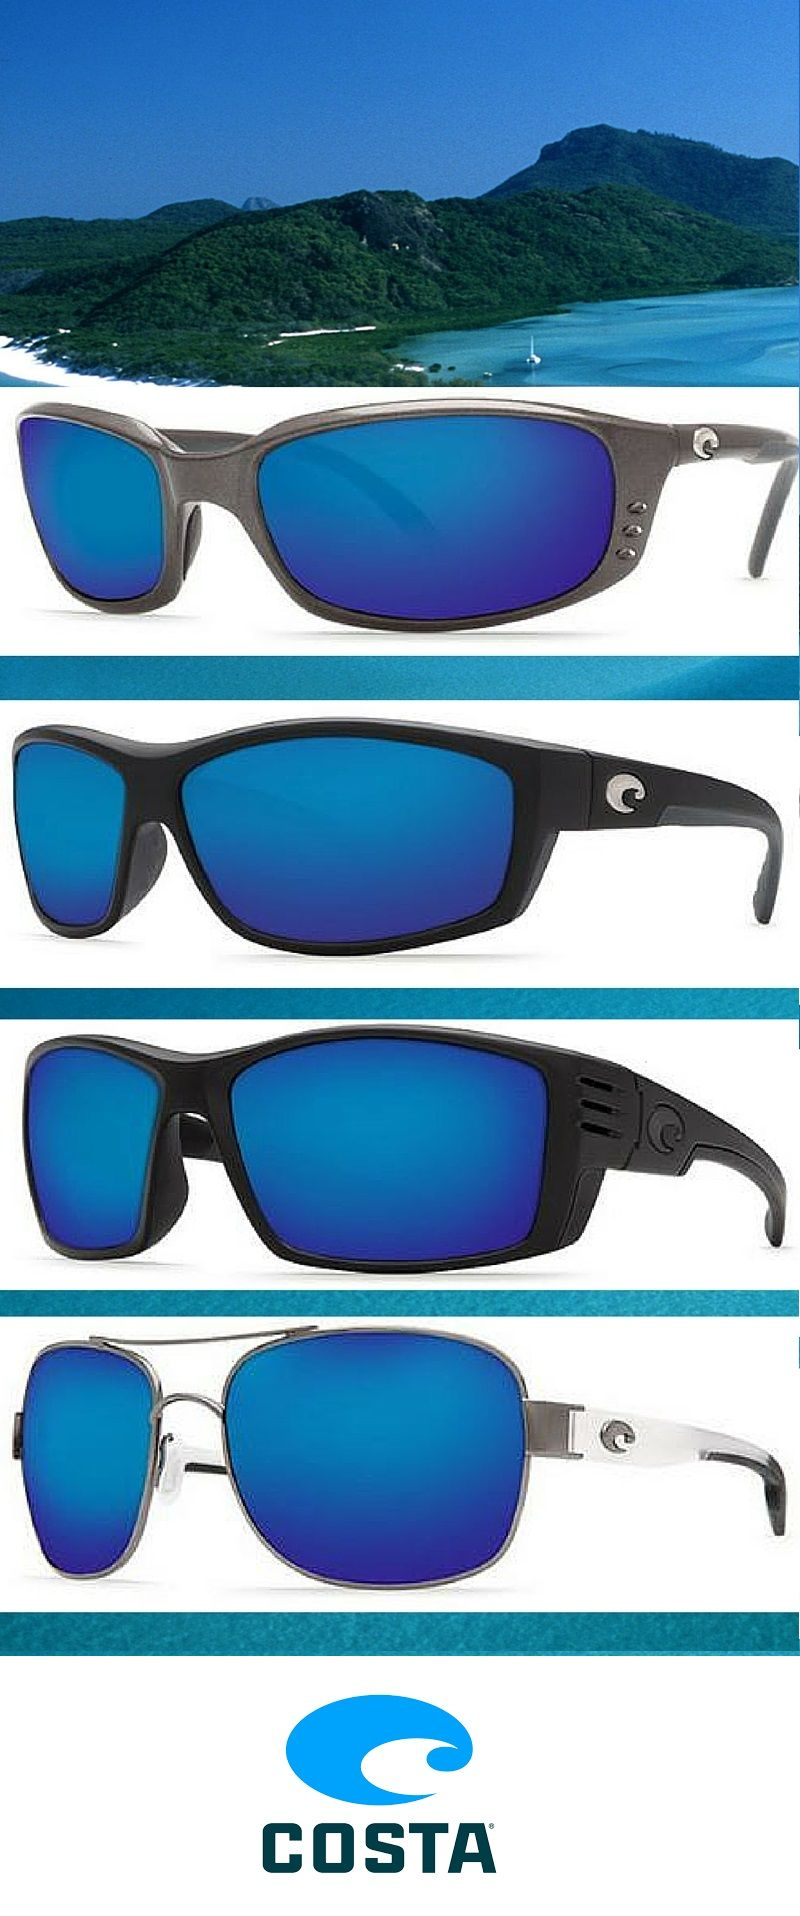 1d45df1e18 Blue Blue Blue! Just like the sea! See the New collection of Costa ...